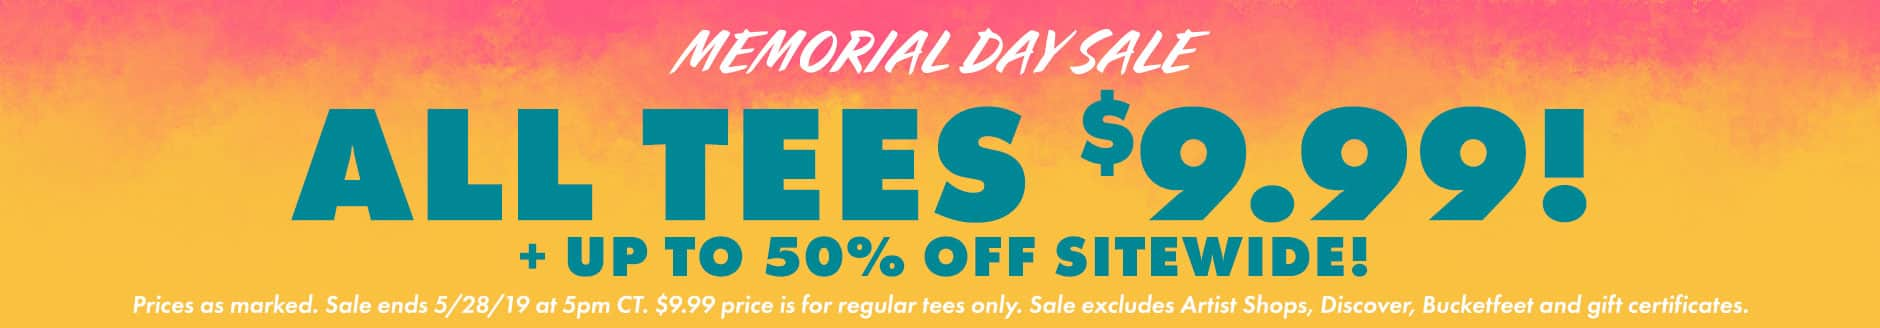 Shop the Memorial Day Sale, All Tees $9.99 Plus, up to 50% off site wide